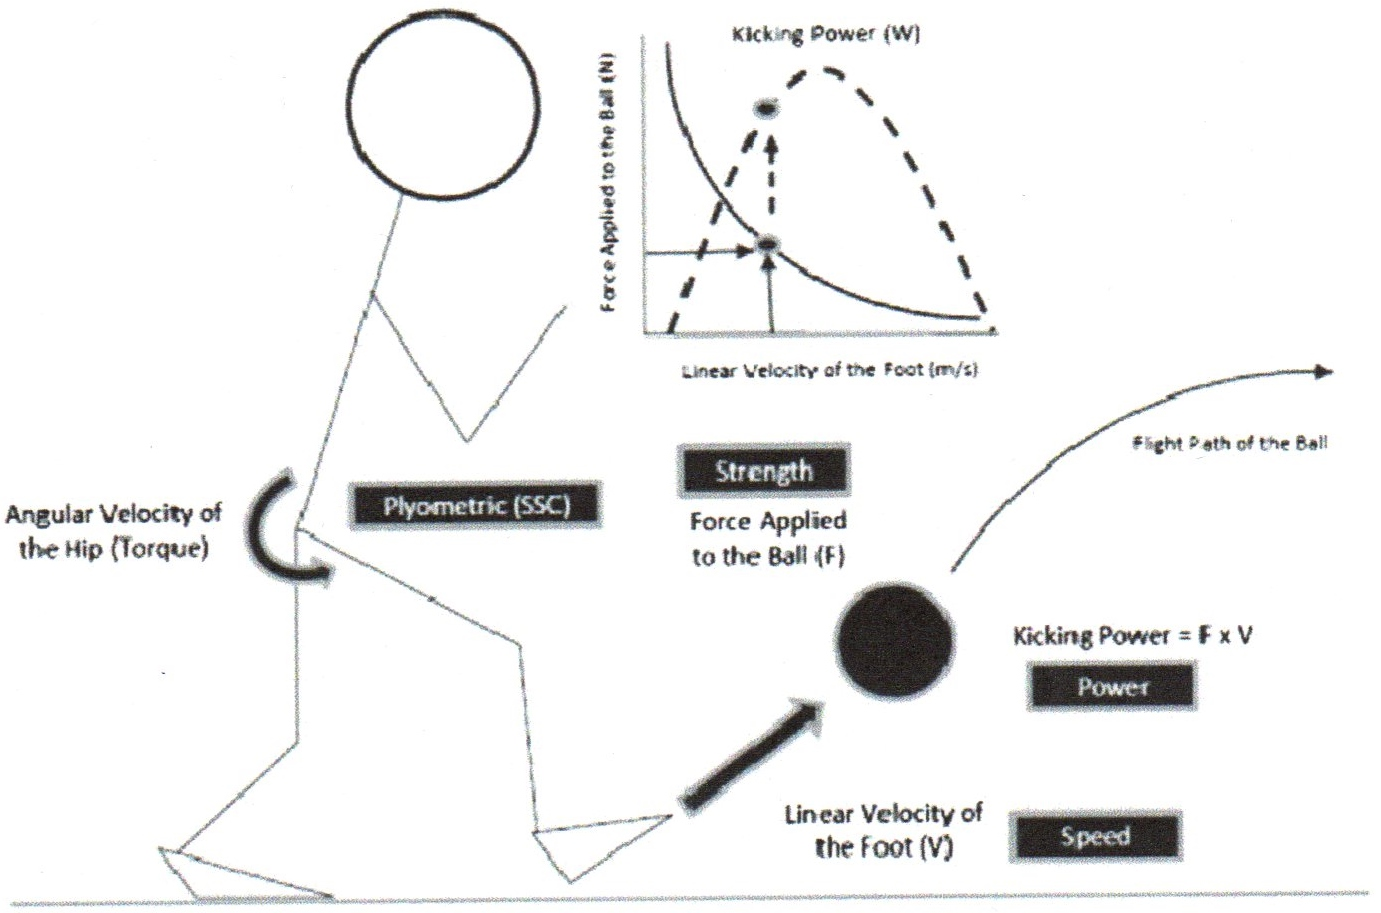 biomechanical principle Biomechanical analysis of takeoff technique in fos bury flop style in high jump 2 biomecanical analysis of fundamental skills of basketball 3.